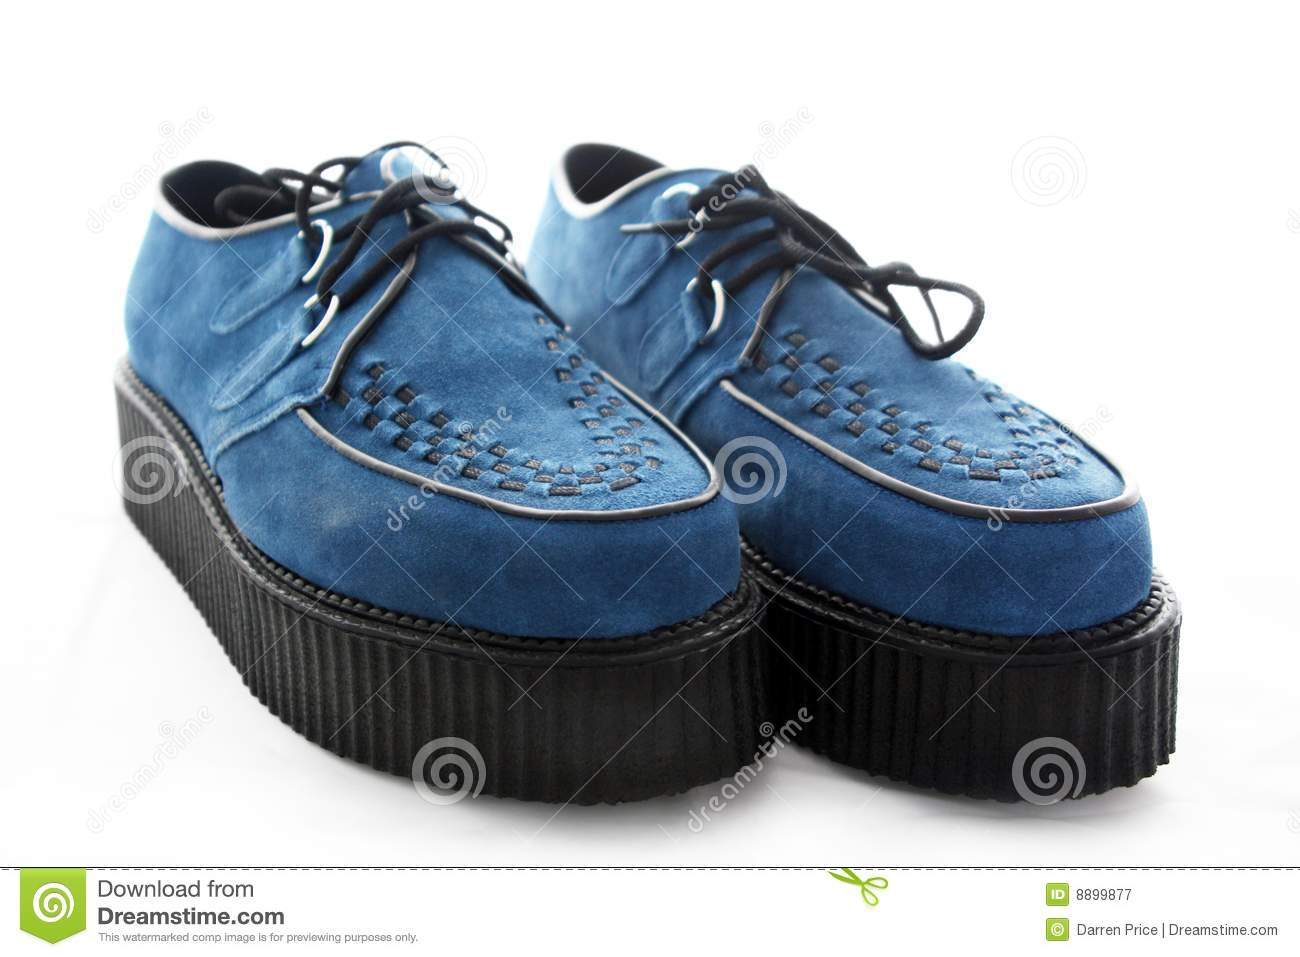 The Price Of Blue Suede Shoes In